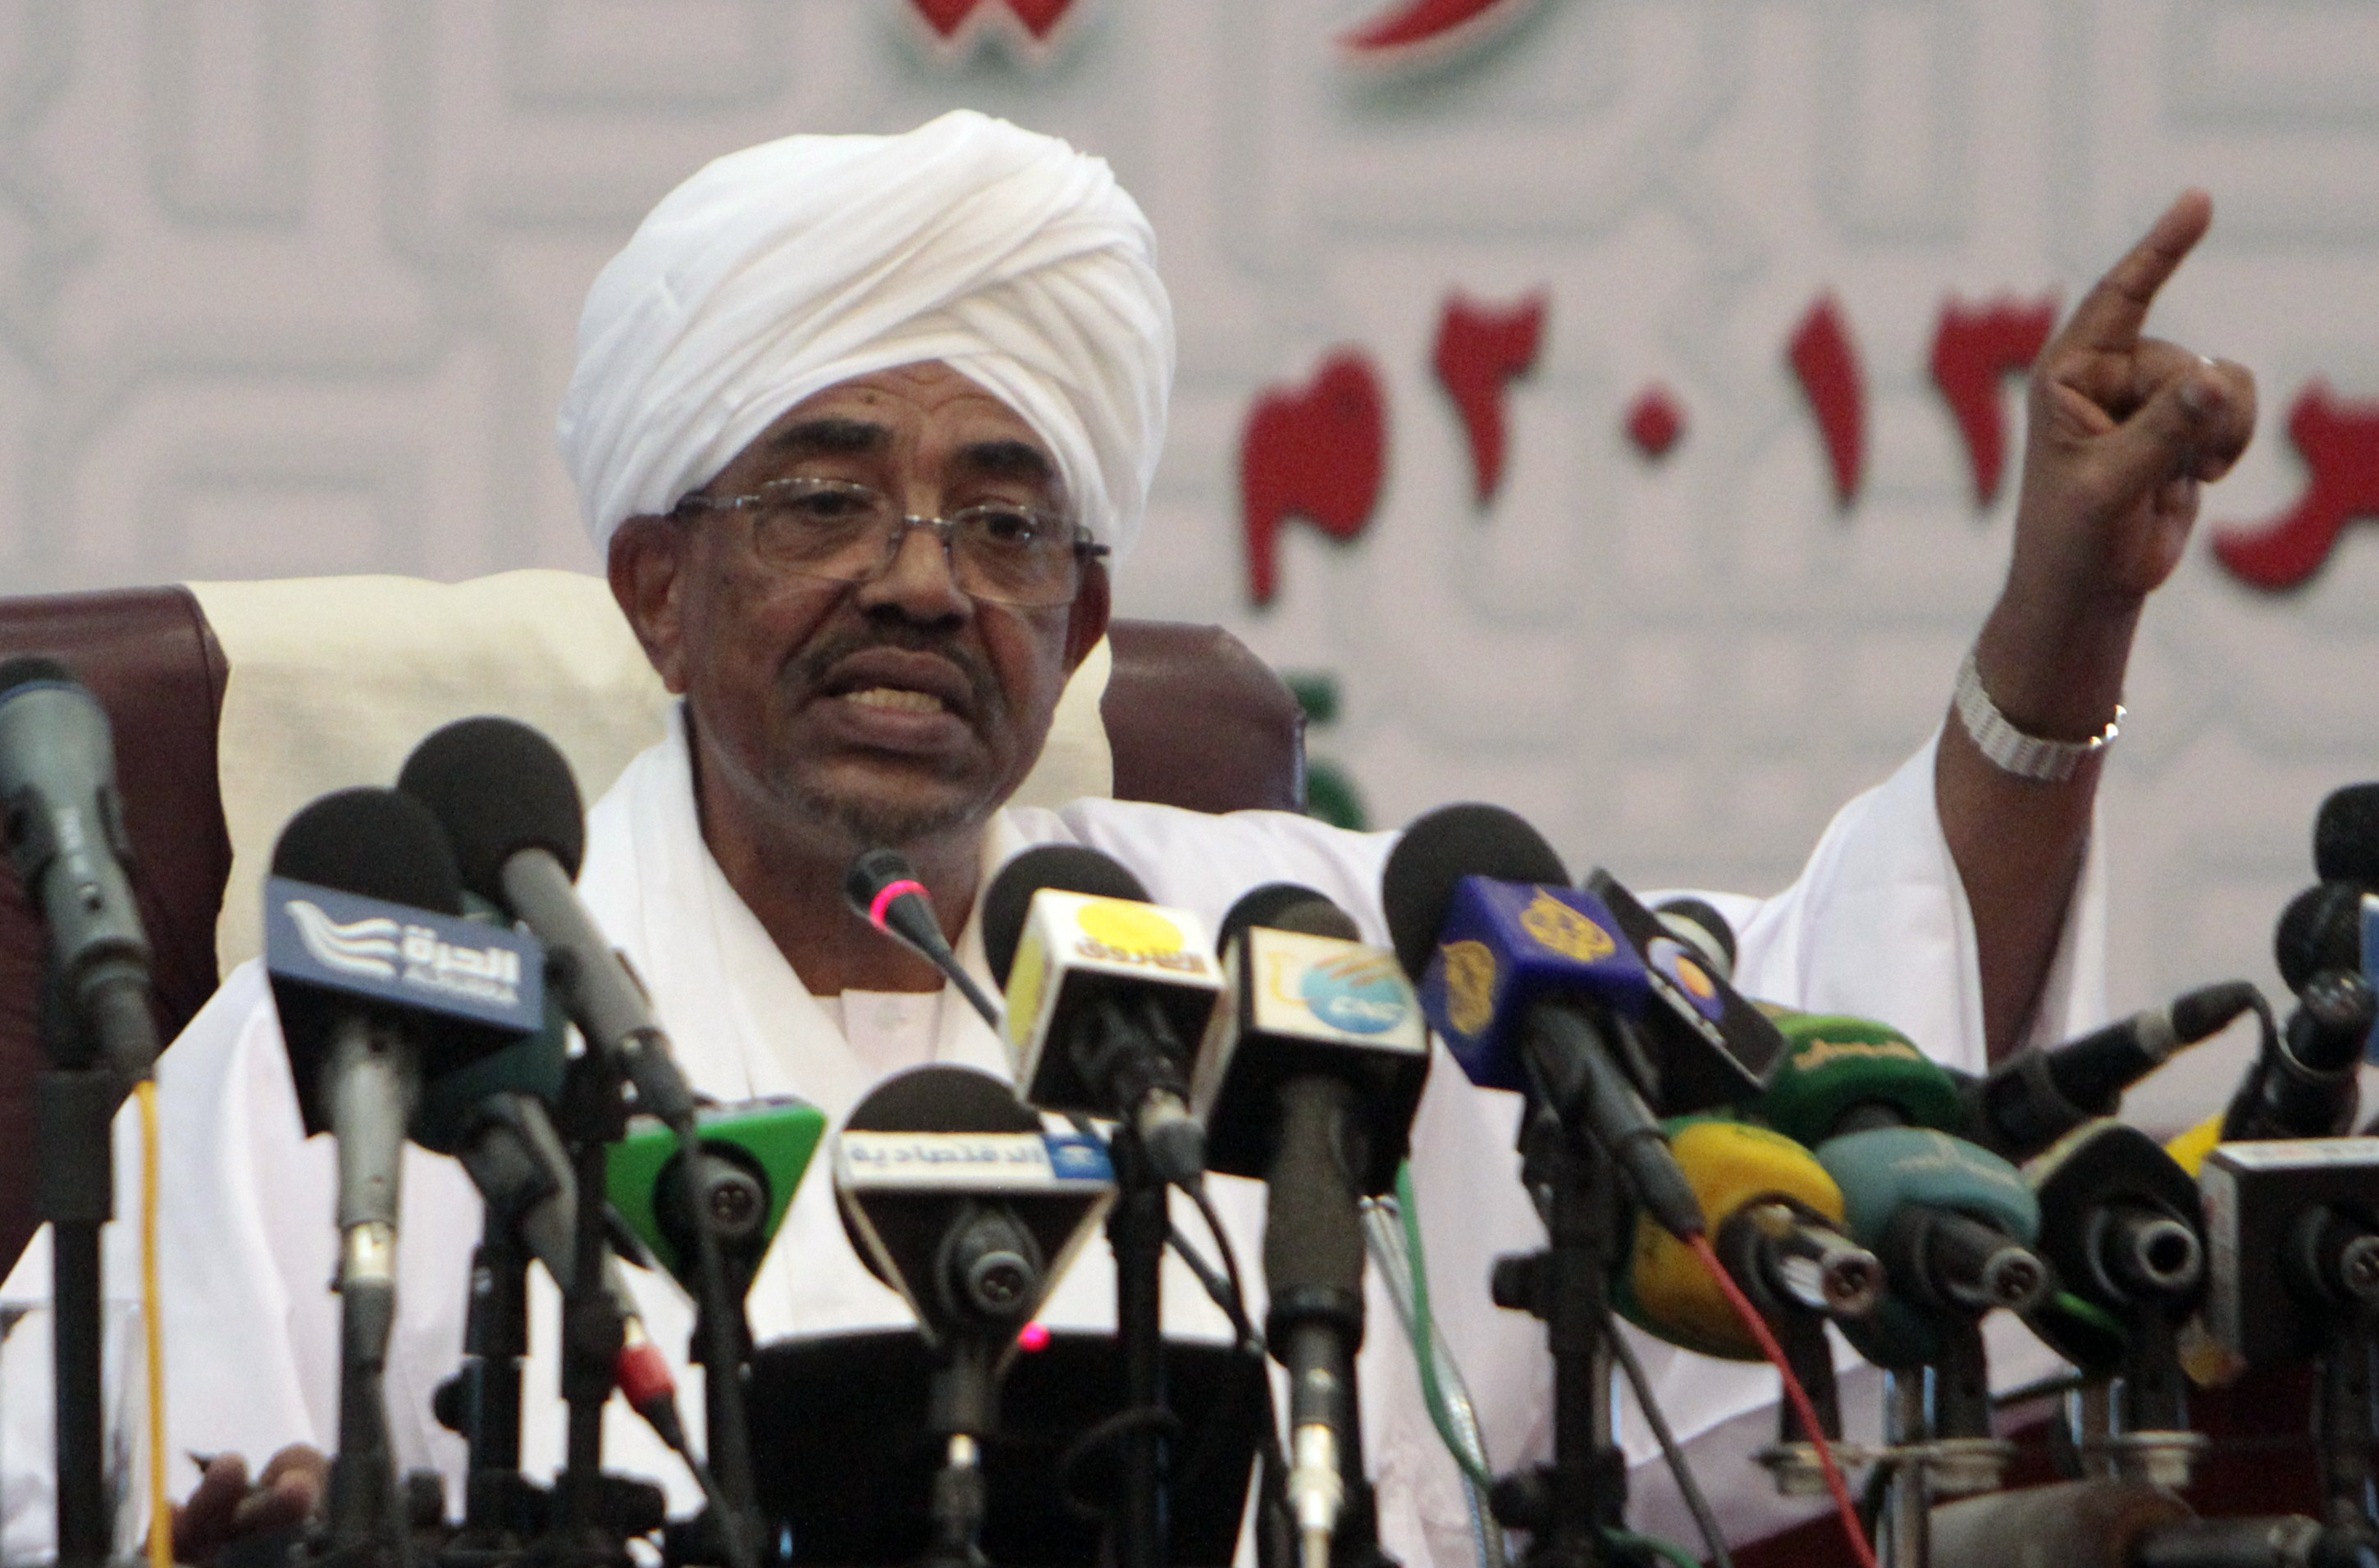 Sudanese President Omar Hassan Ahmed Al-Bashir won the national elections in a landslide victory with 94.5% (AFP File Photo)